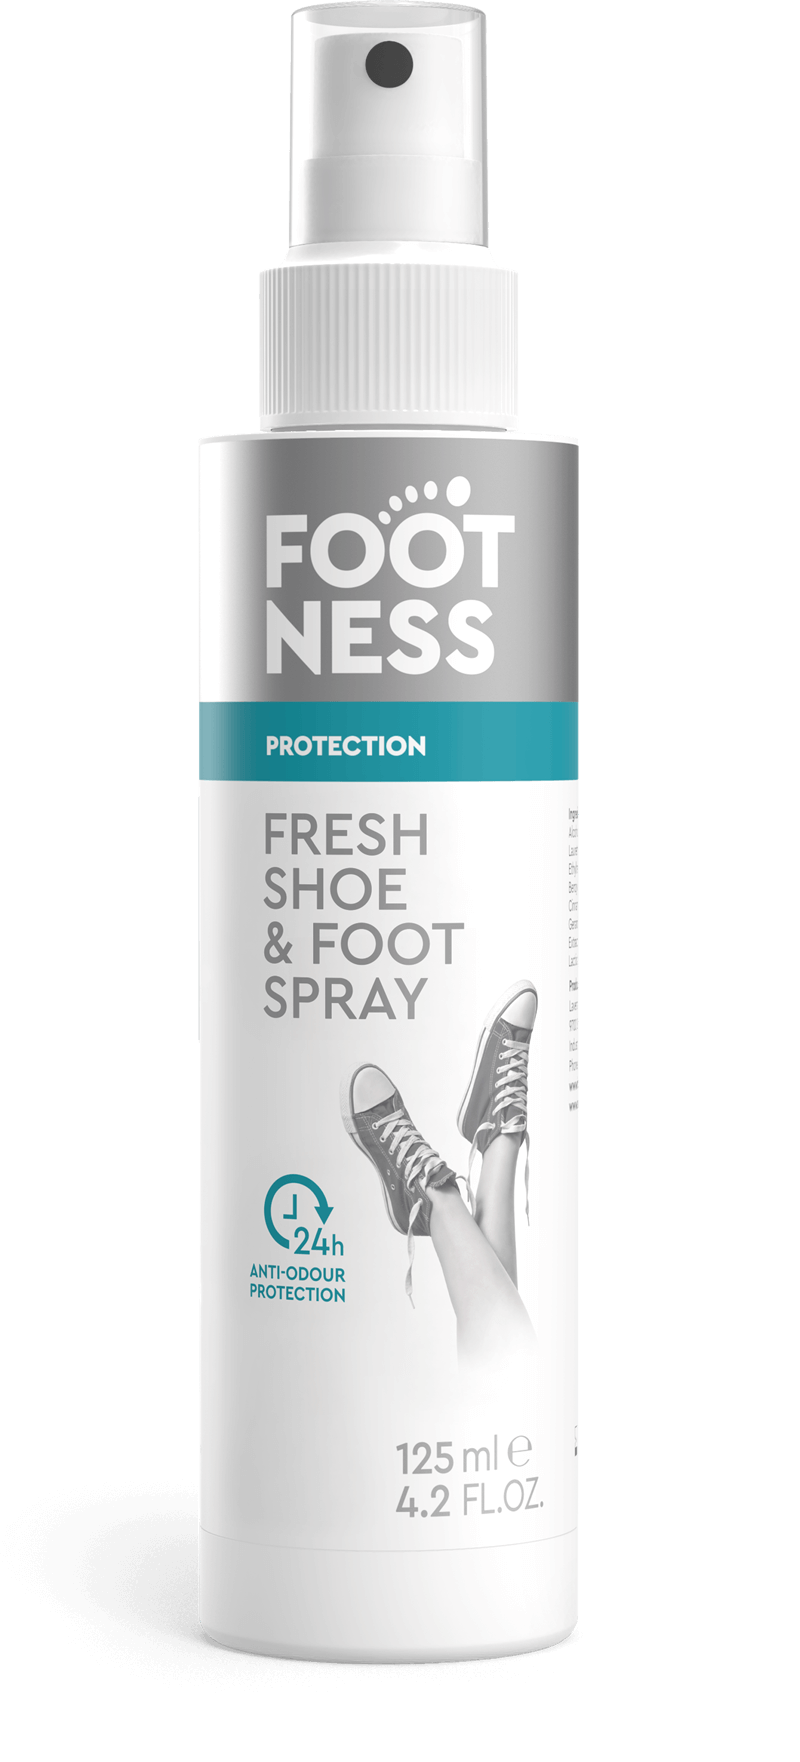 Fresh Shoe & Foot Spray